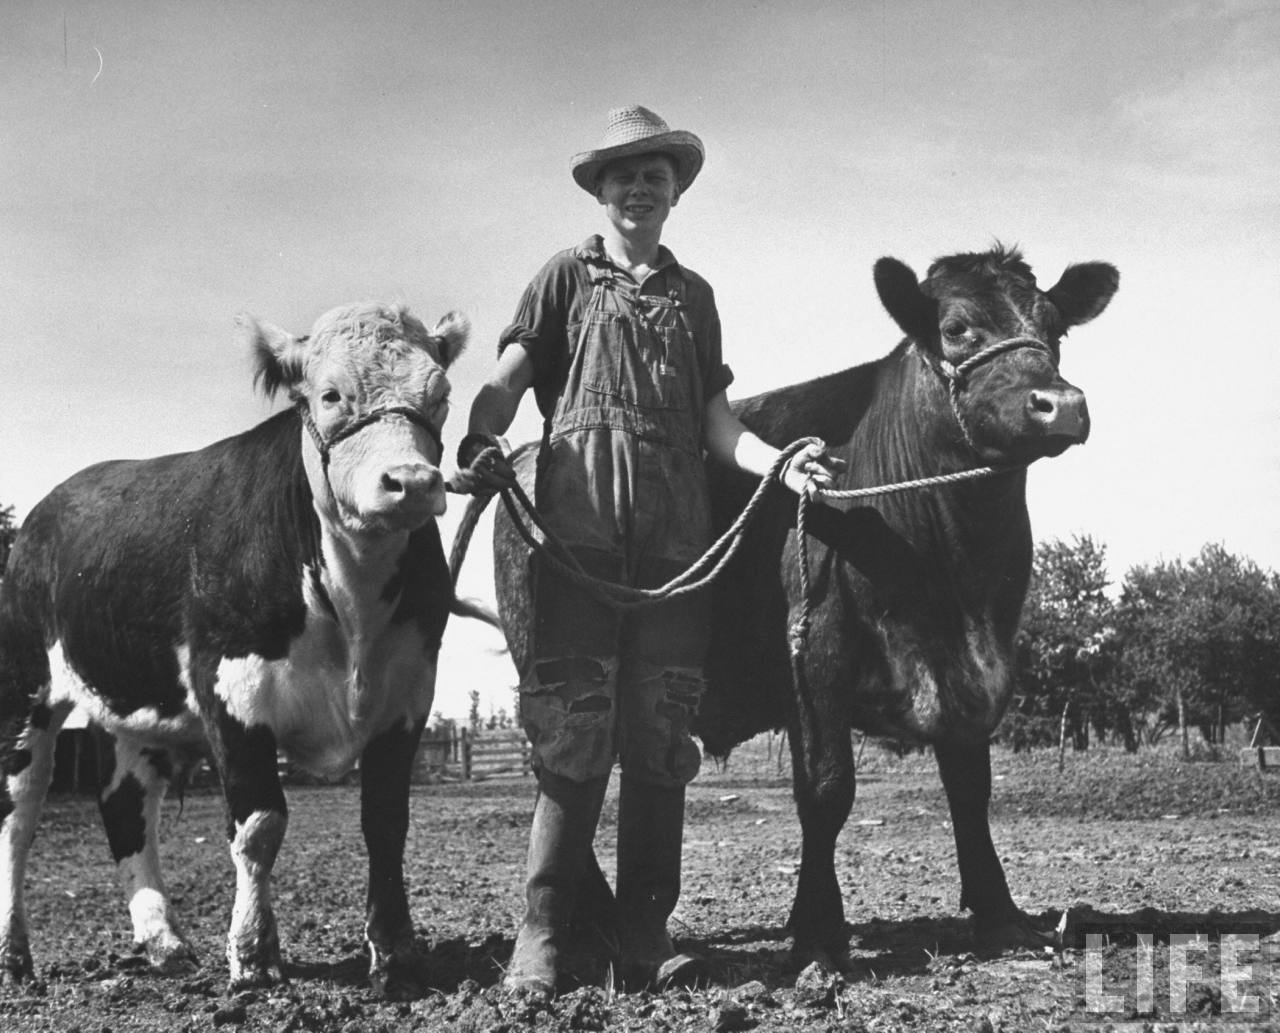 Old Photos: One Day In Life Of Kansas Farm Boy